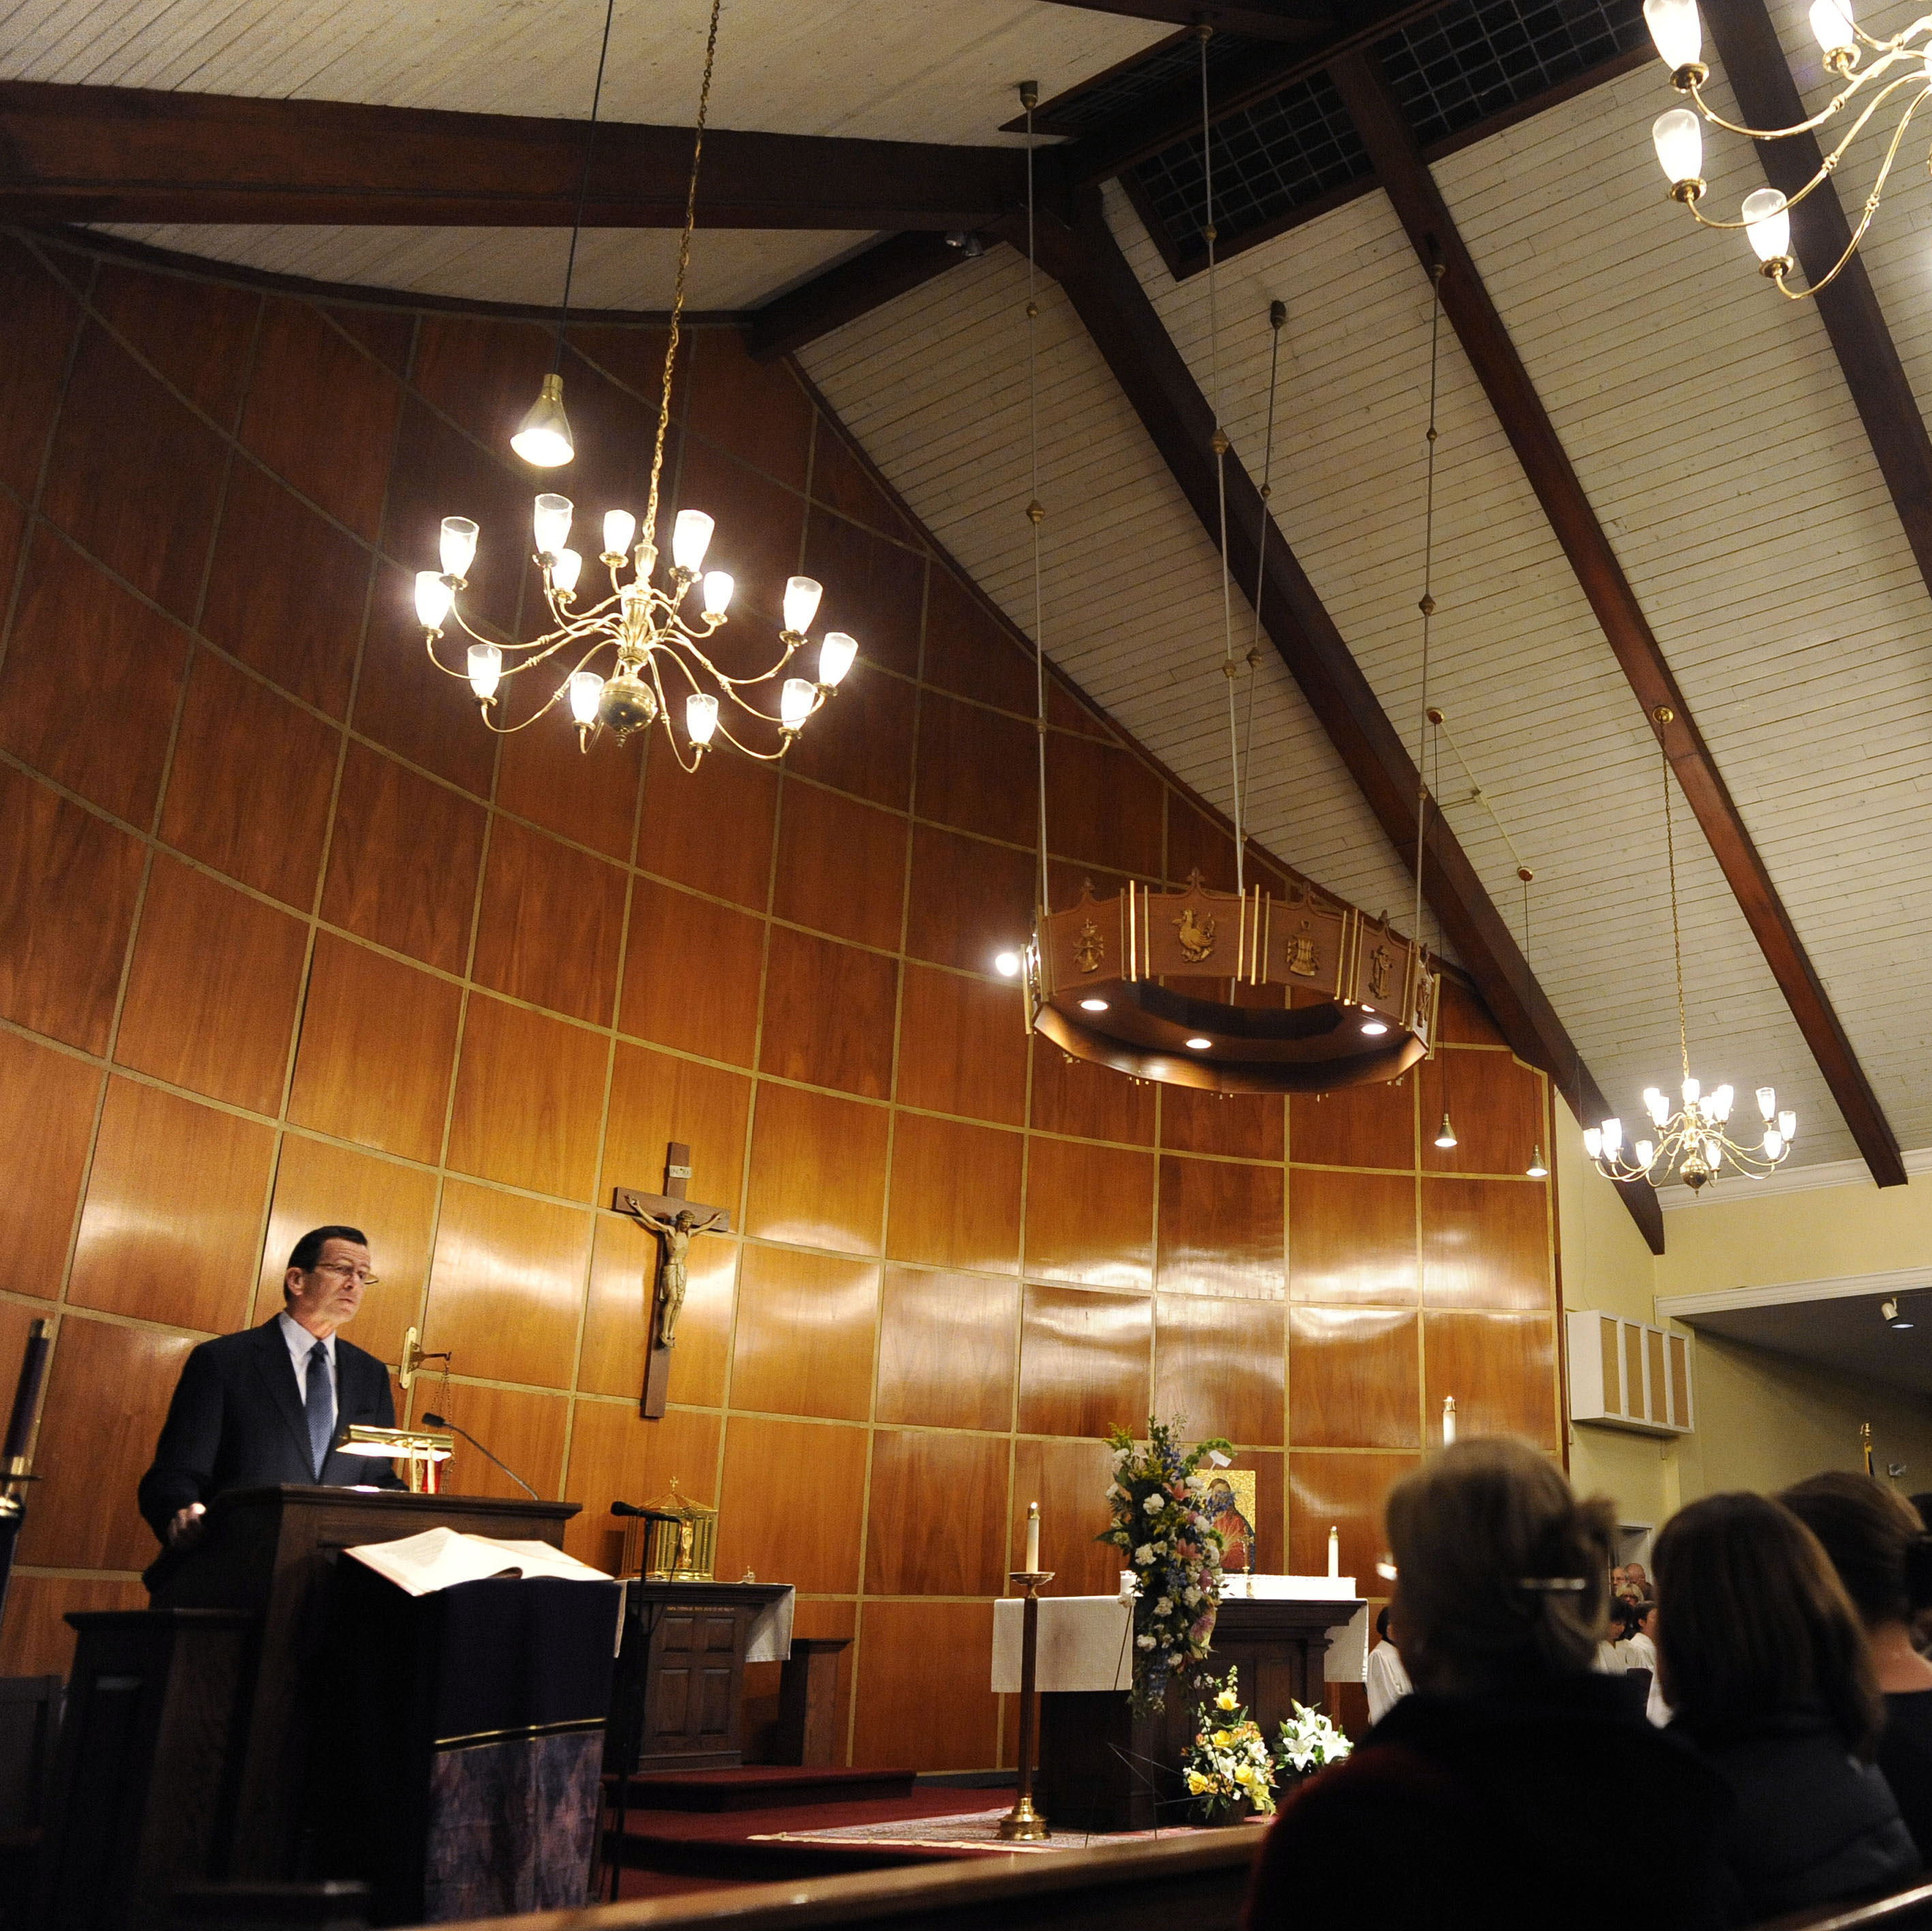 Connecticut Gov. Dannel Malloy speaks to mourners at a vigil service for victims of the Sandy Hook Elementary School shooting in Newtown on Dec. 14, 2012.